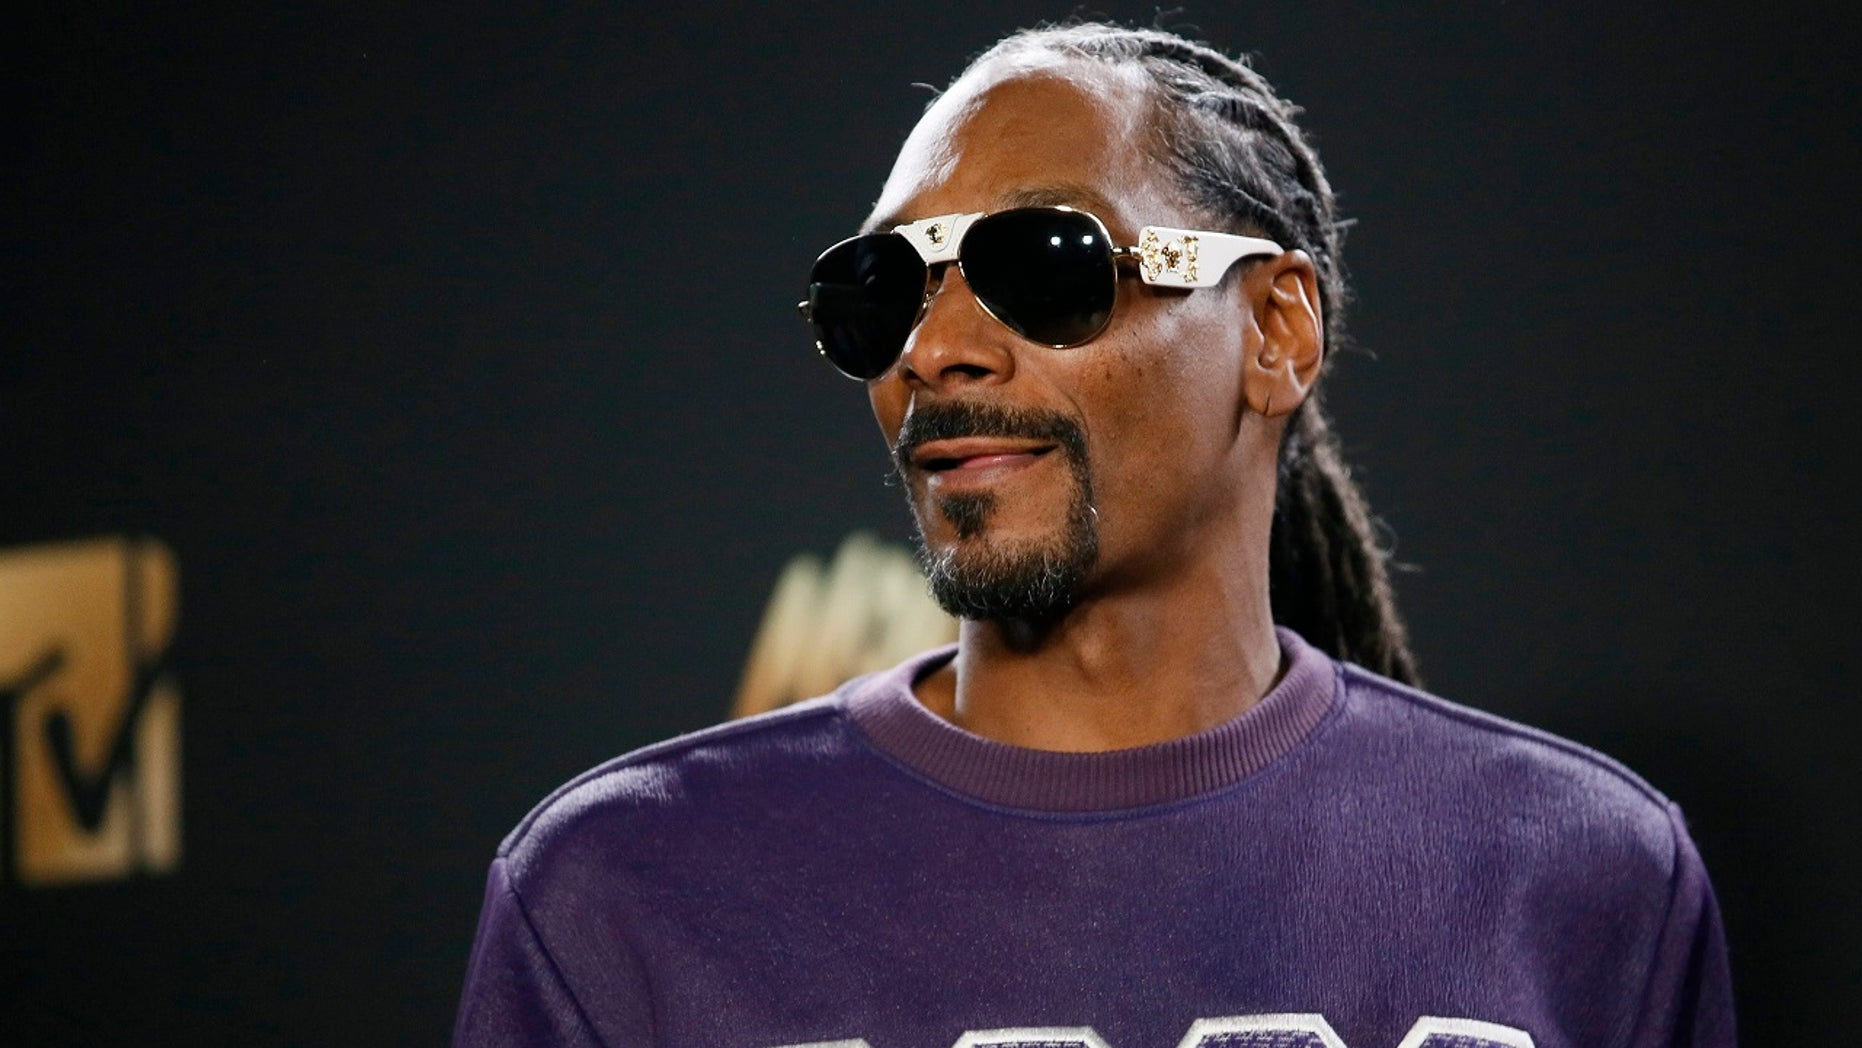 Rapper Snoop Dogg is seen in a video saying,